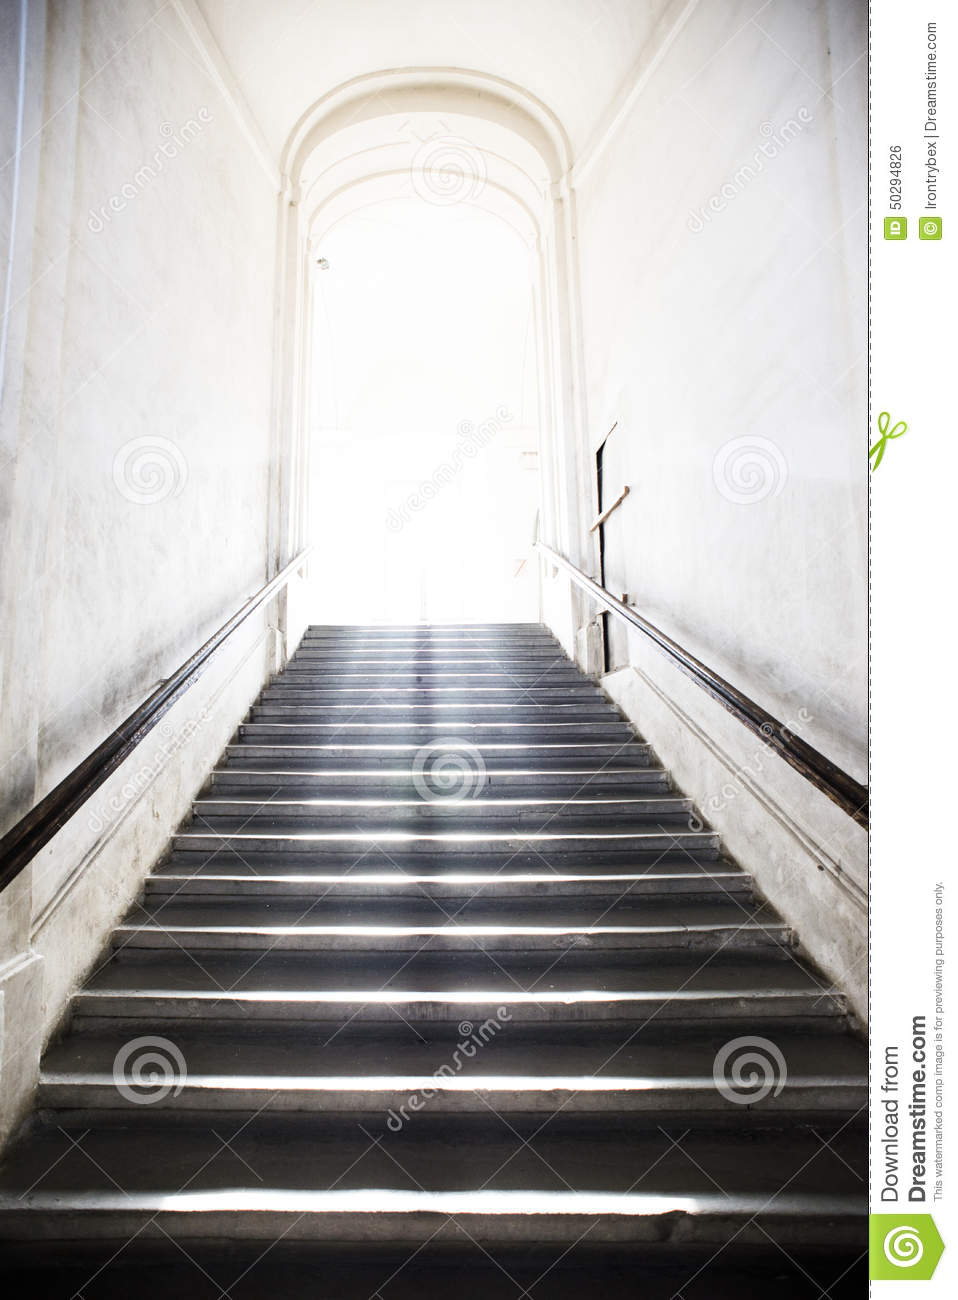 17 Best Images About Staircase Lighting Ideas On: Tunnel Stair Going Up To The Light Stock Photo